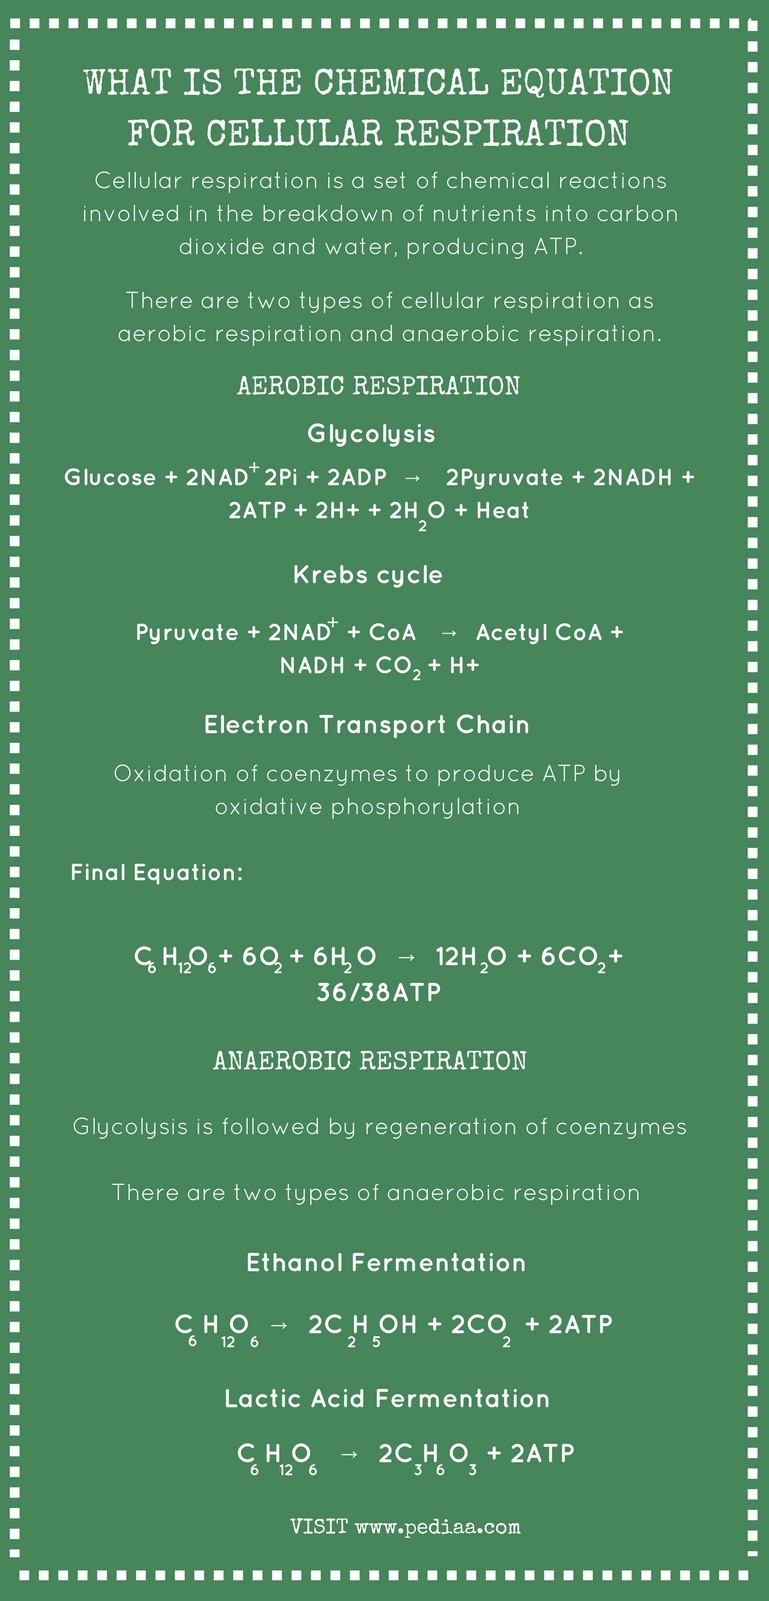 What is the Chemical Equation for Cellular Respiration - Infographic